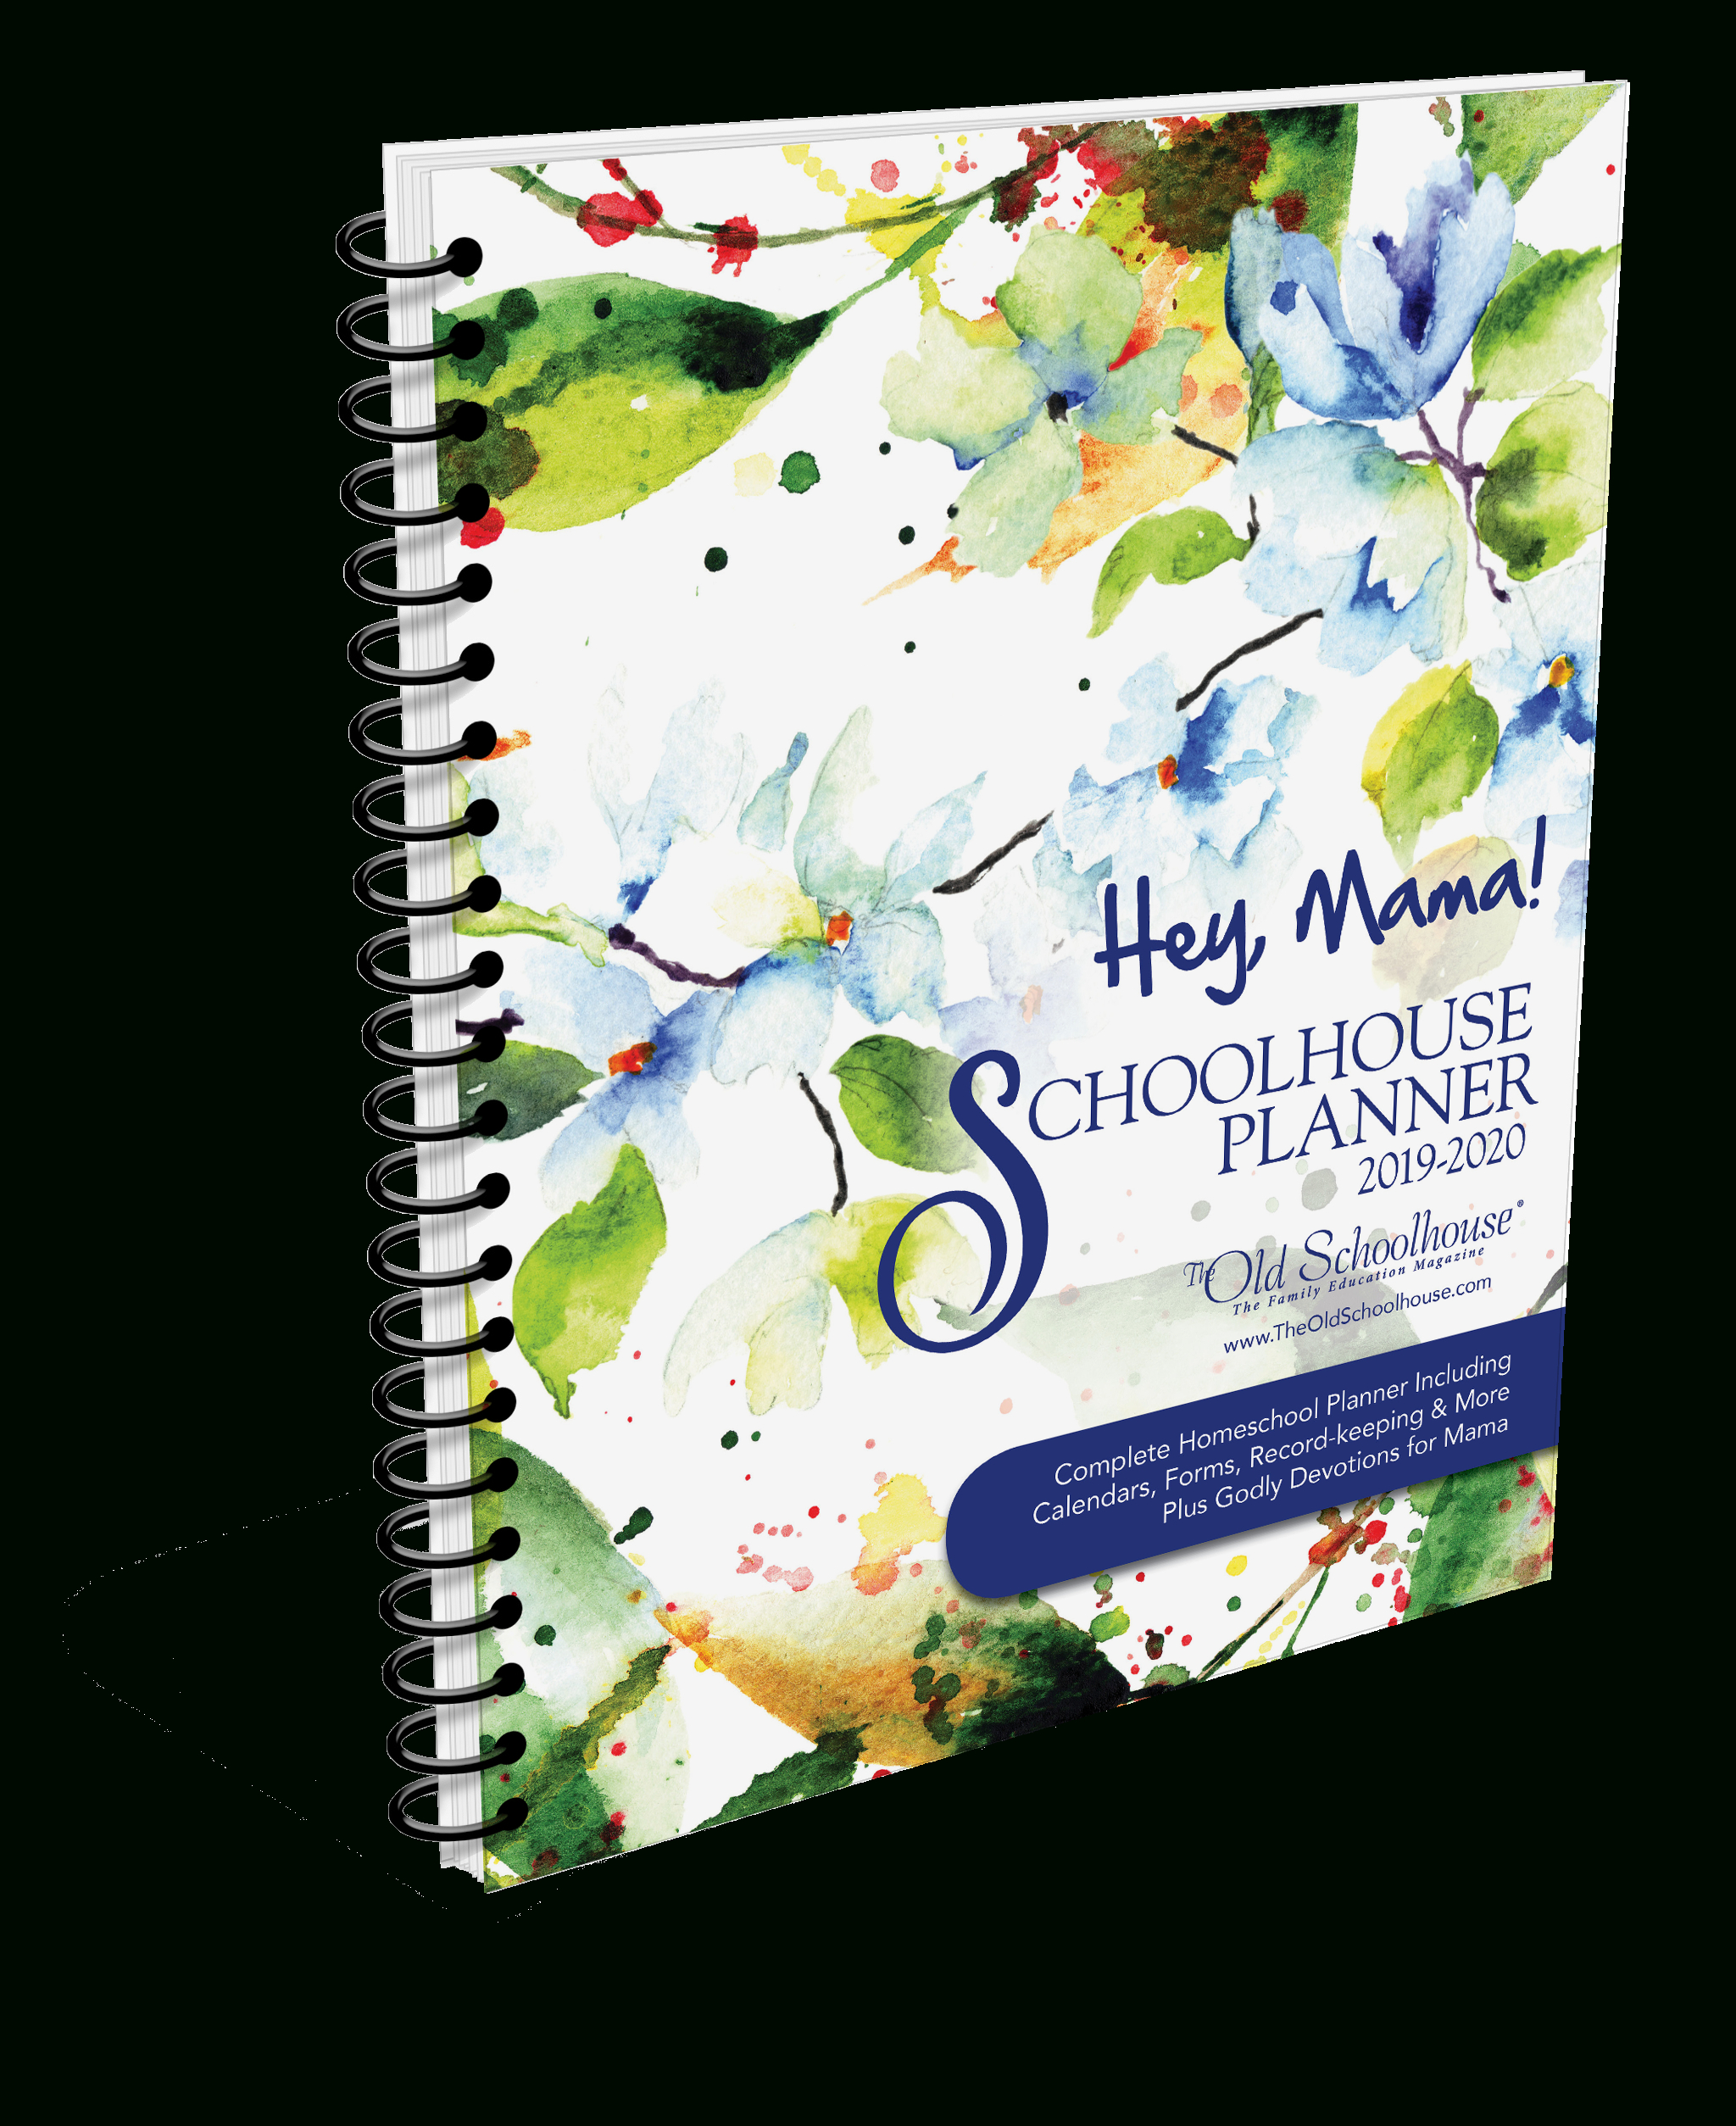 Hey, Mama! Homeschool Planner For 2019/20 Year intended for Homeschool Year At A Glance 2019-2020 Botanical Calendar Printable Free